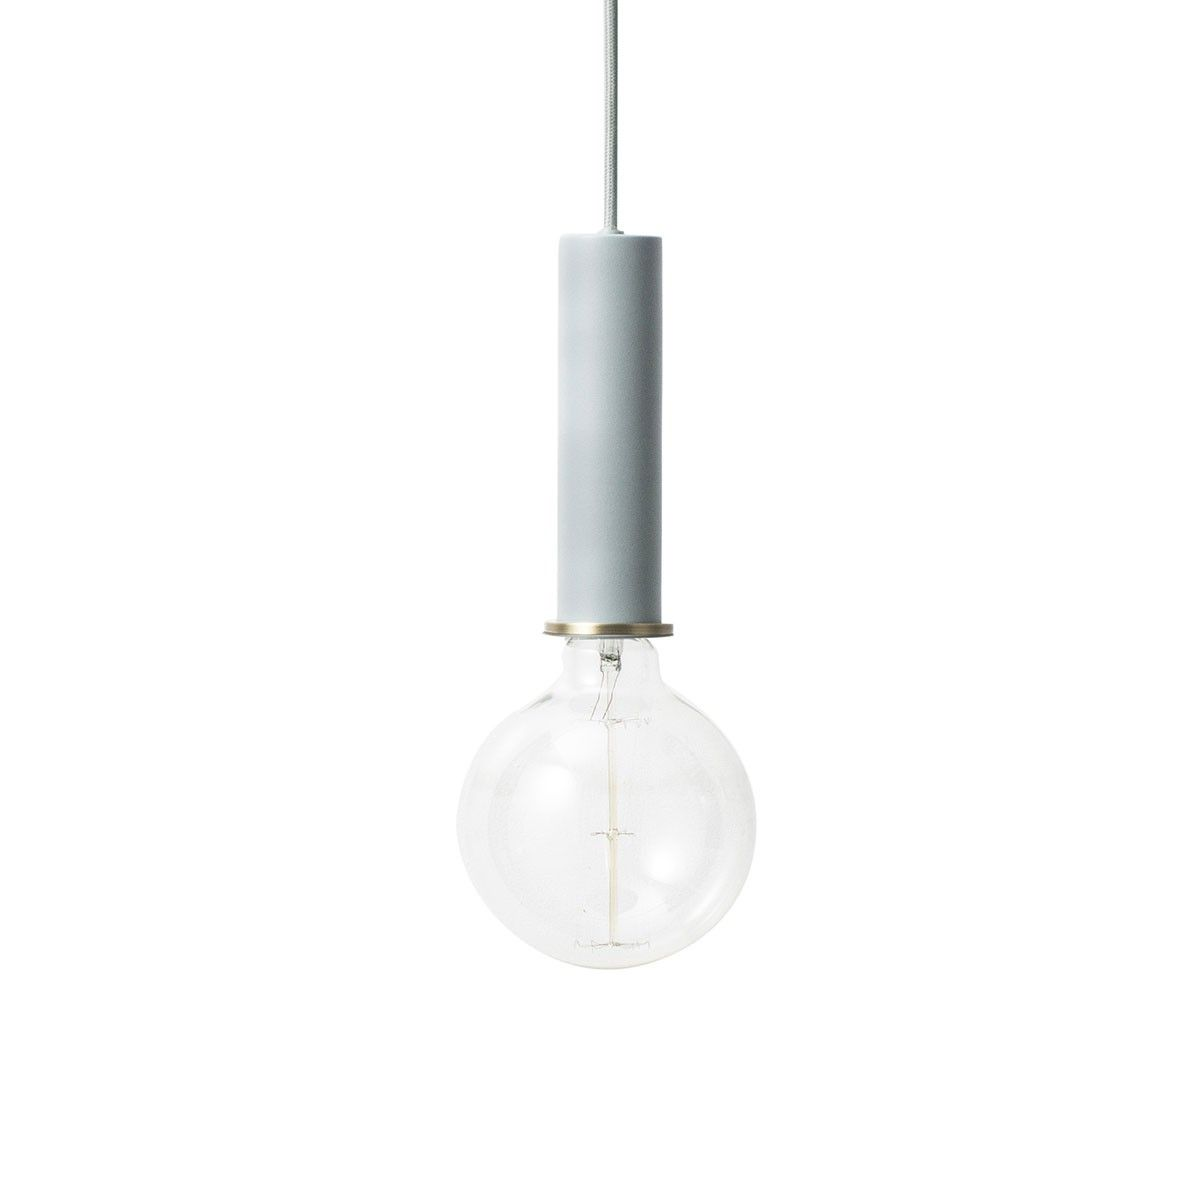 Suspension Socket GM Bleu clair Ferm living La marque